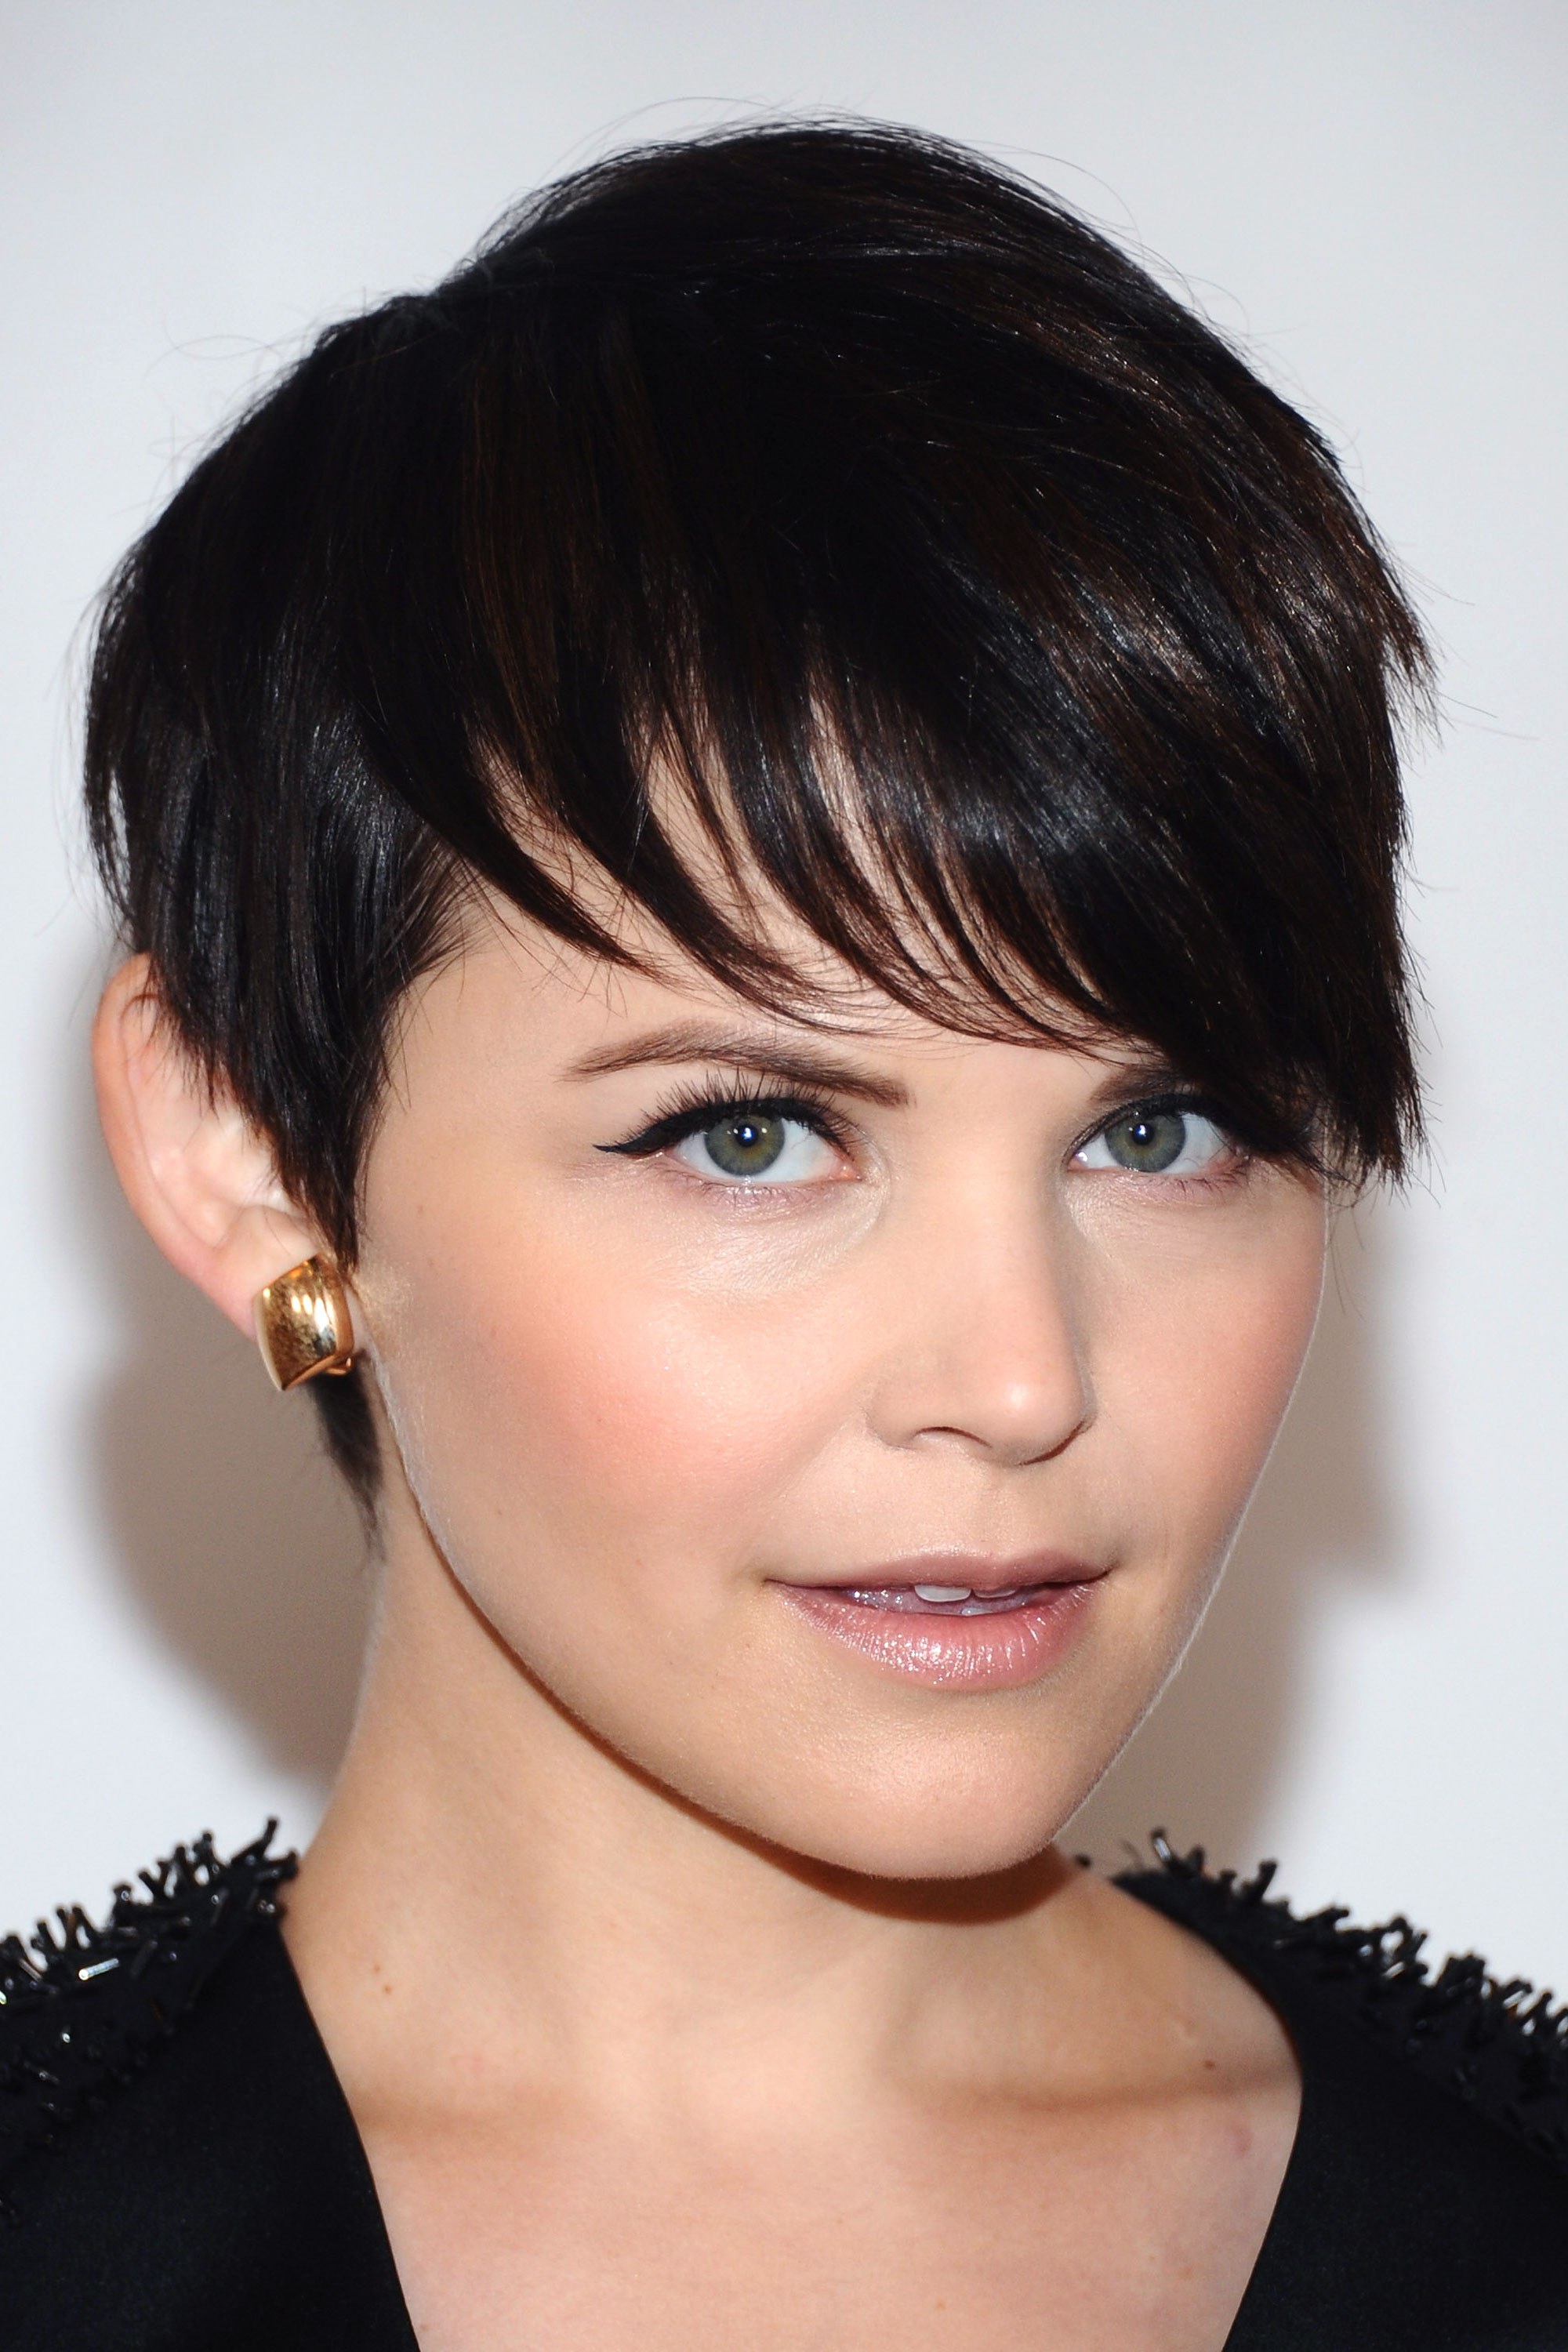 Wondrous 42 Pixie Cuts We Love For 2017 Short Pixie Hairstyles From Short Hairstyles For Black Women Fulllsitofus